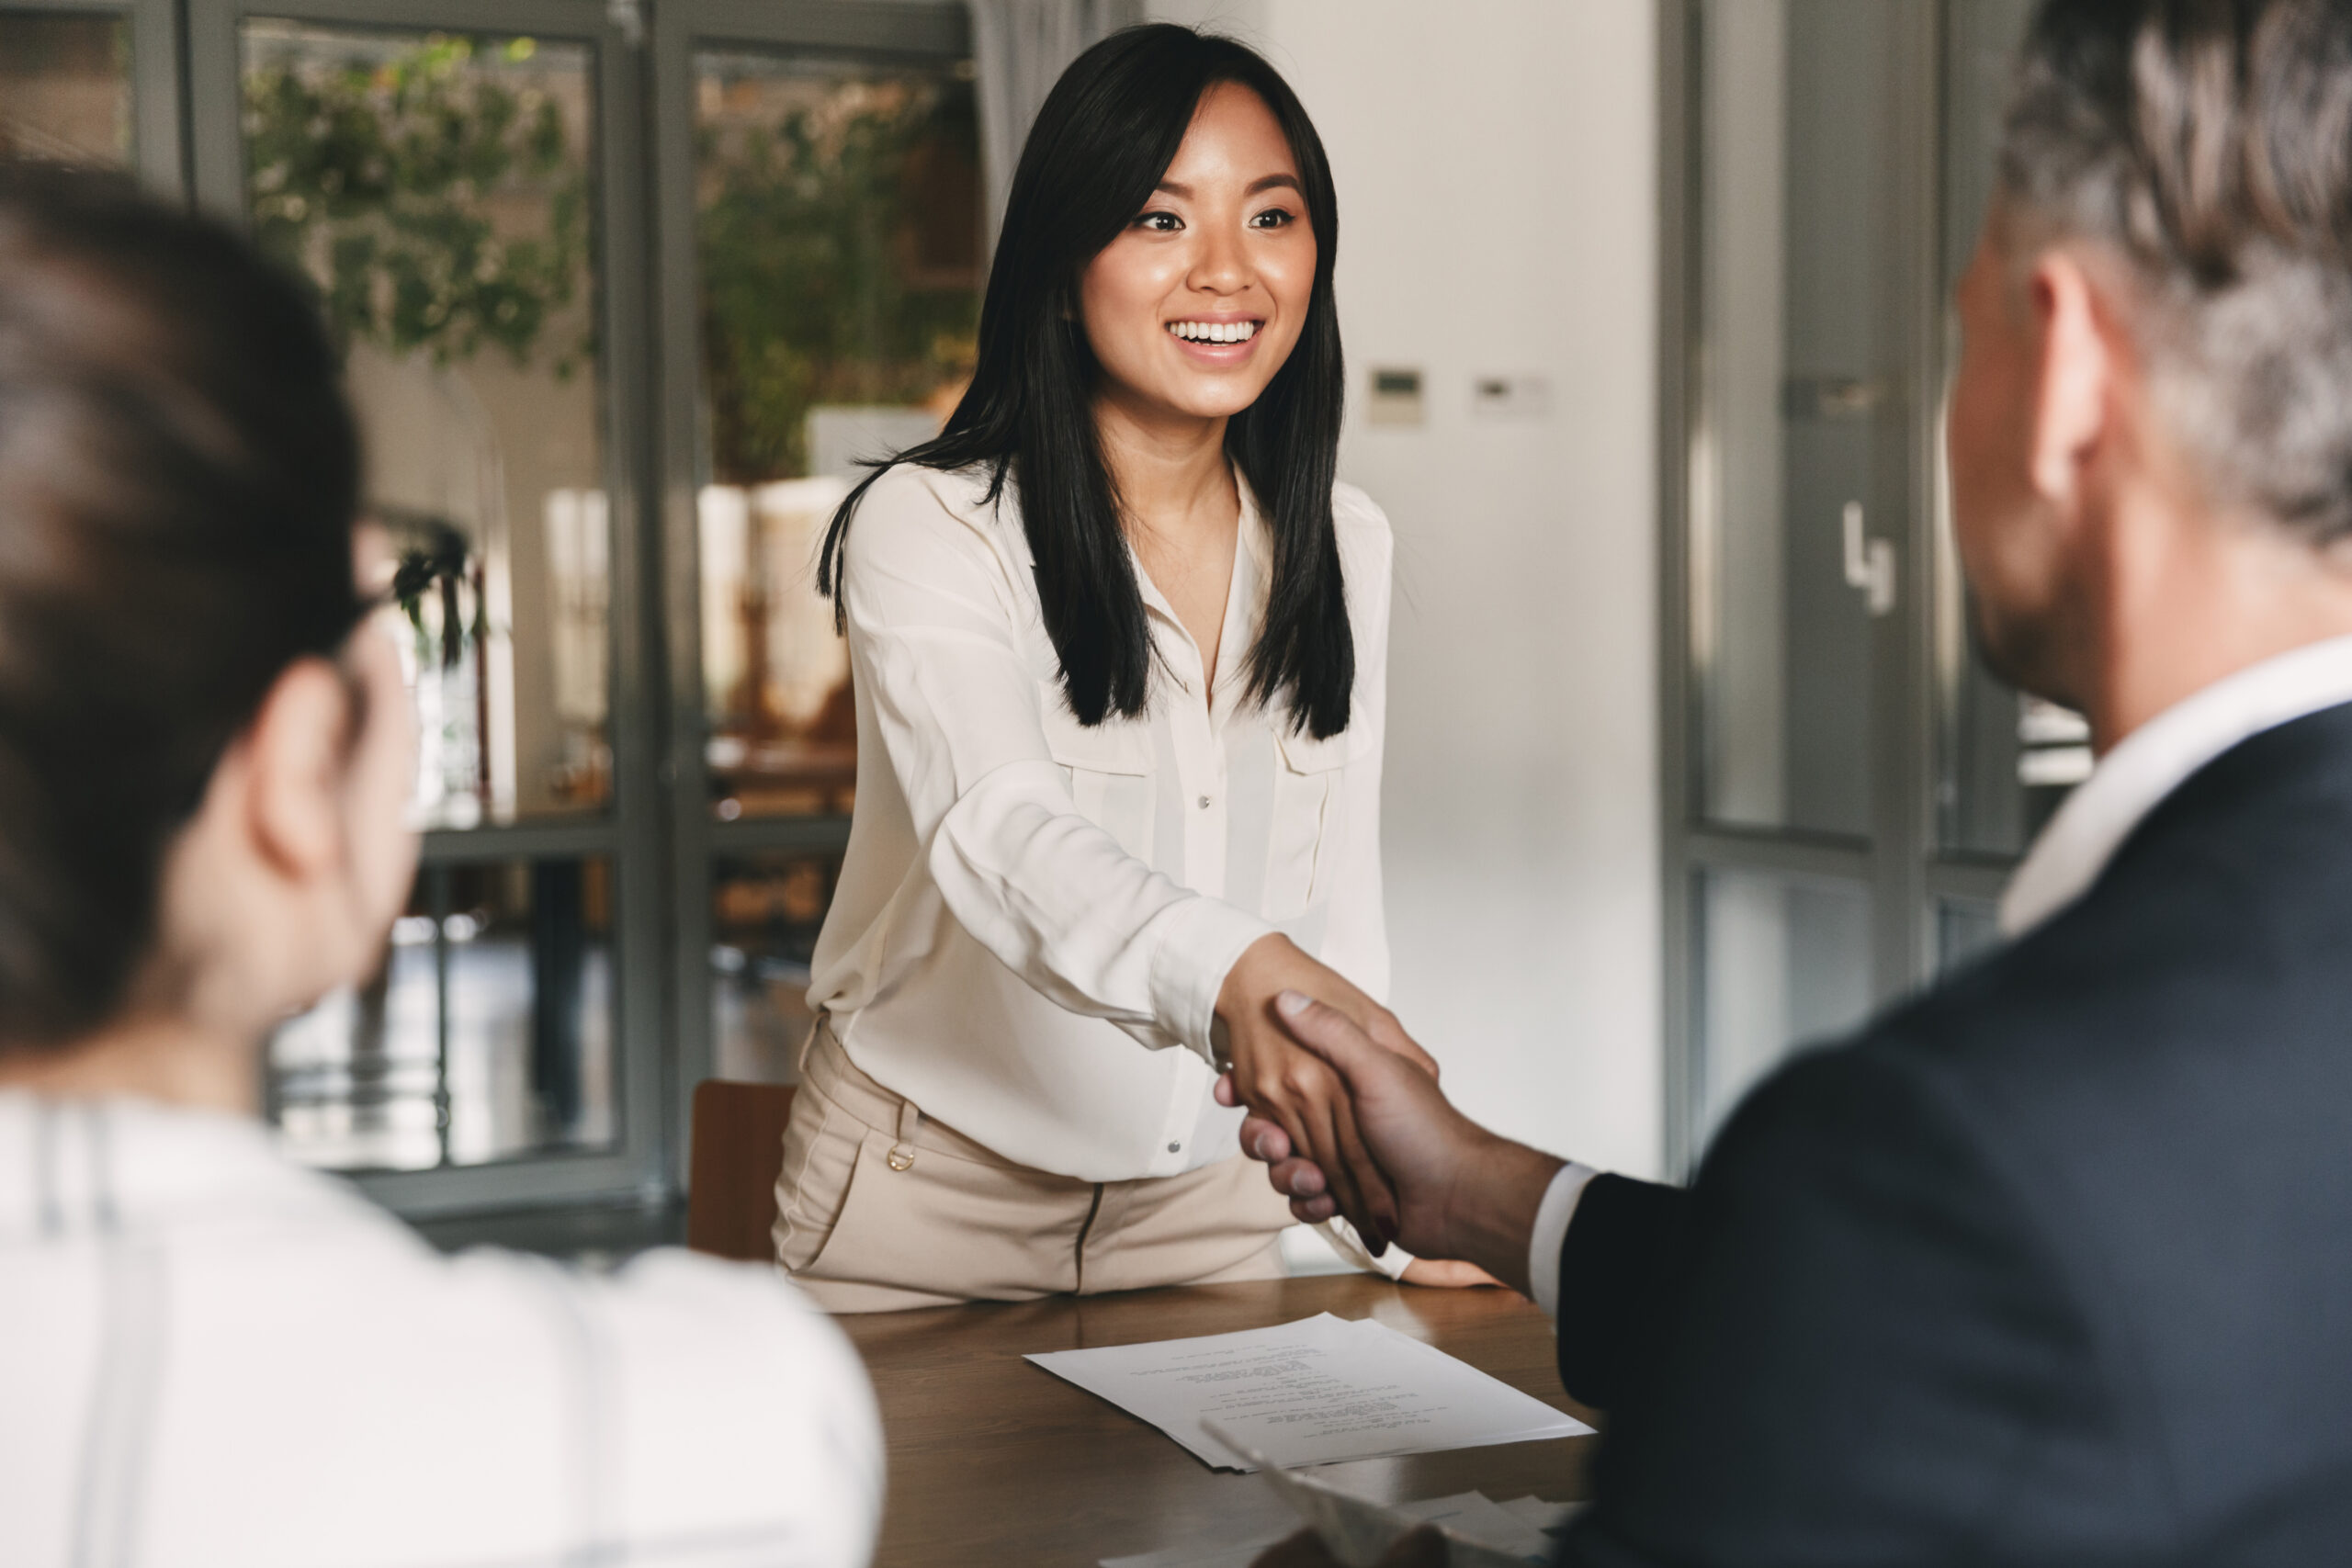 young woman shaking hand with business man at job interview